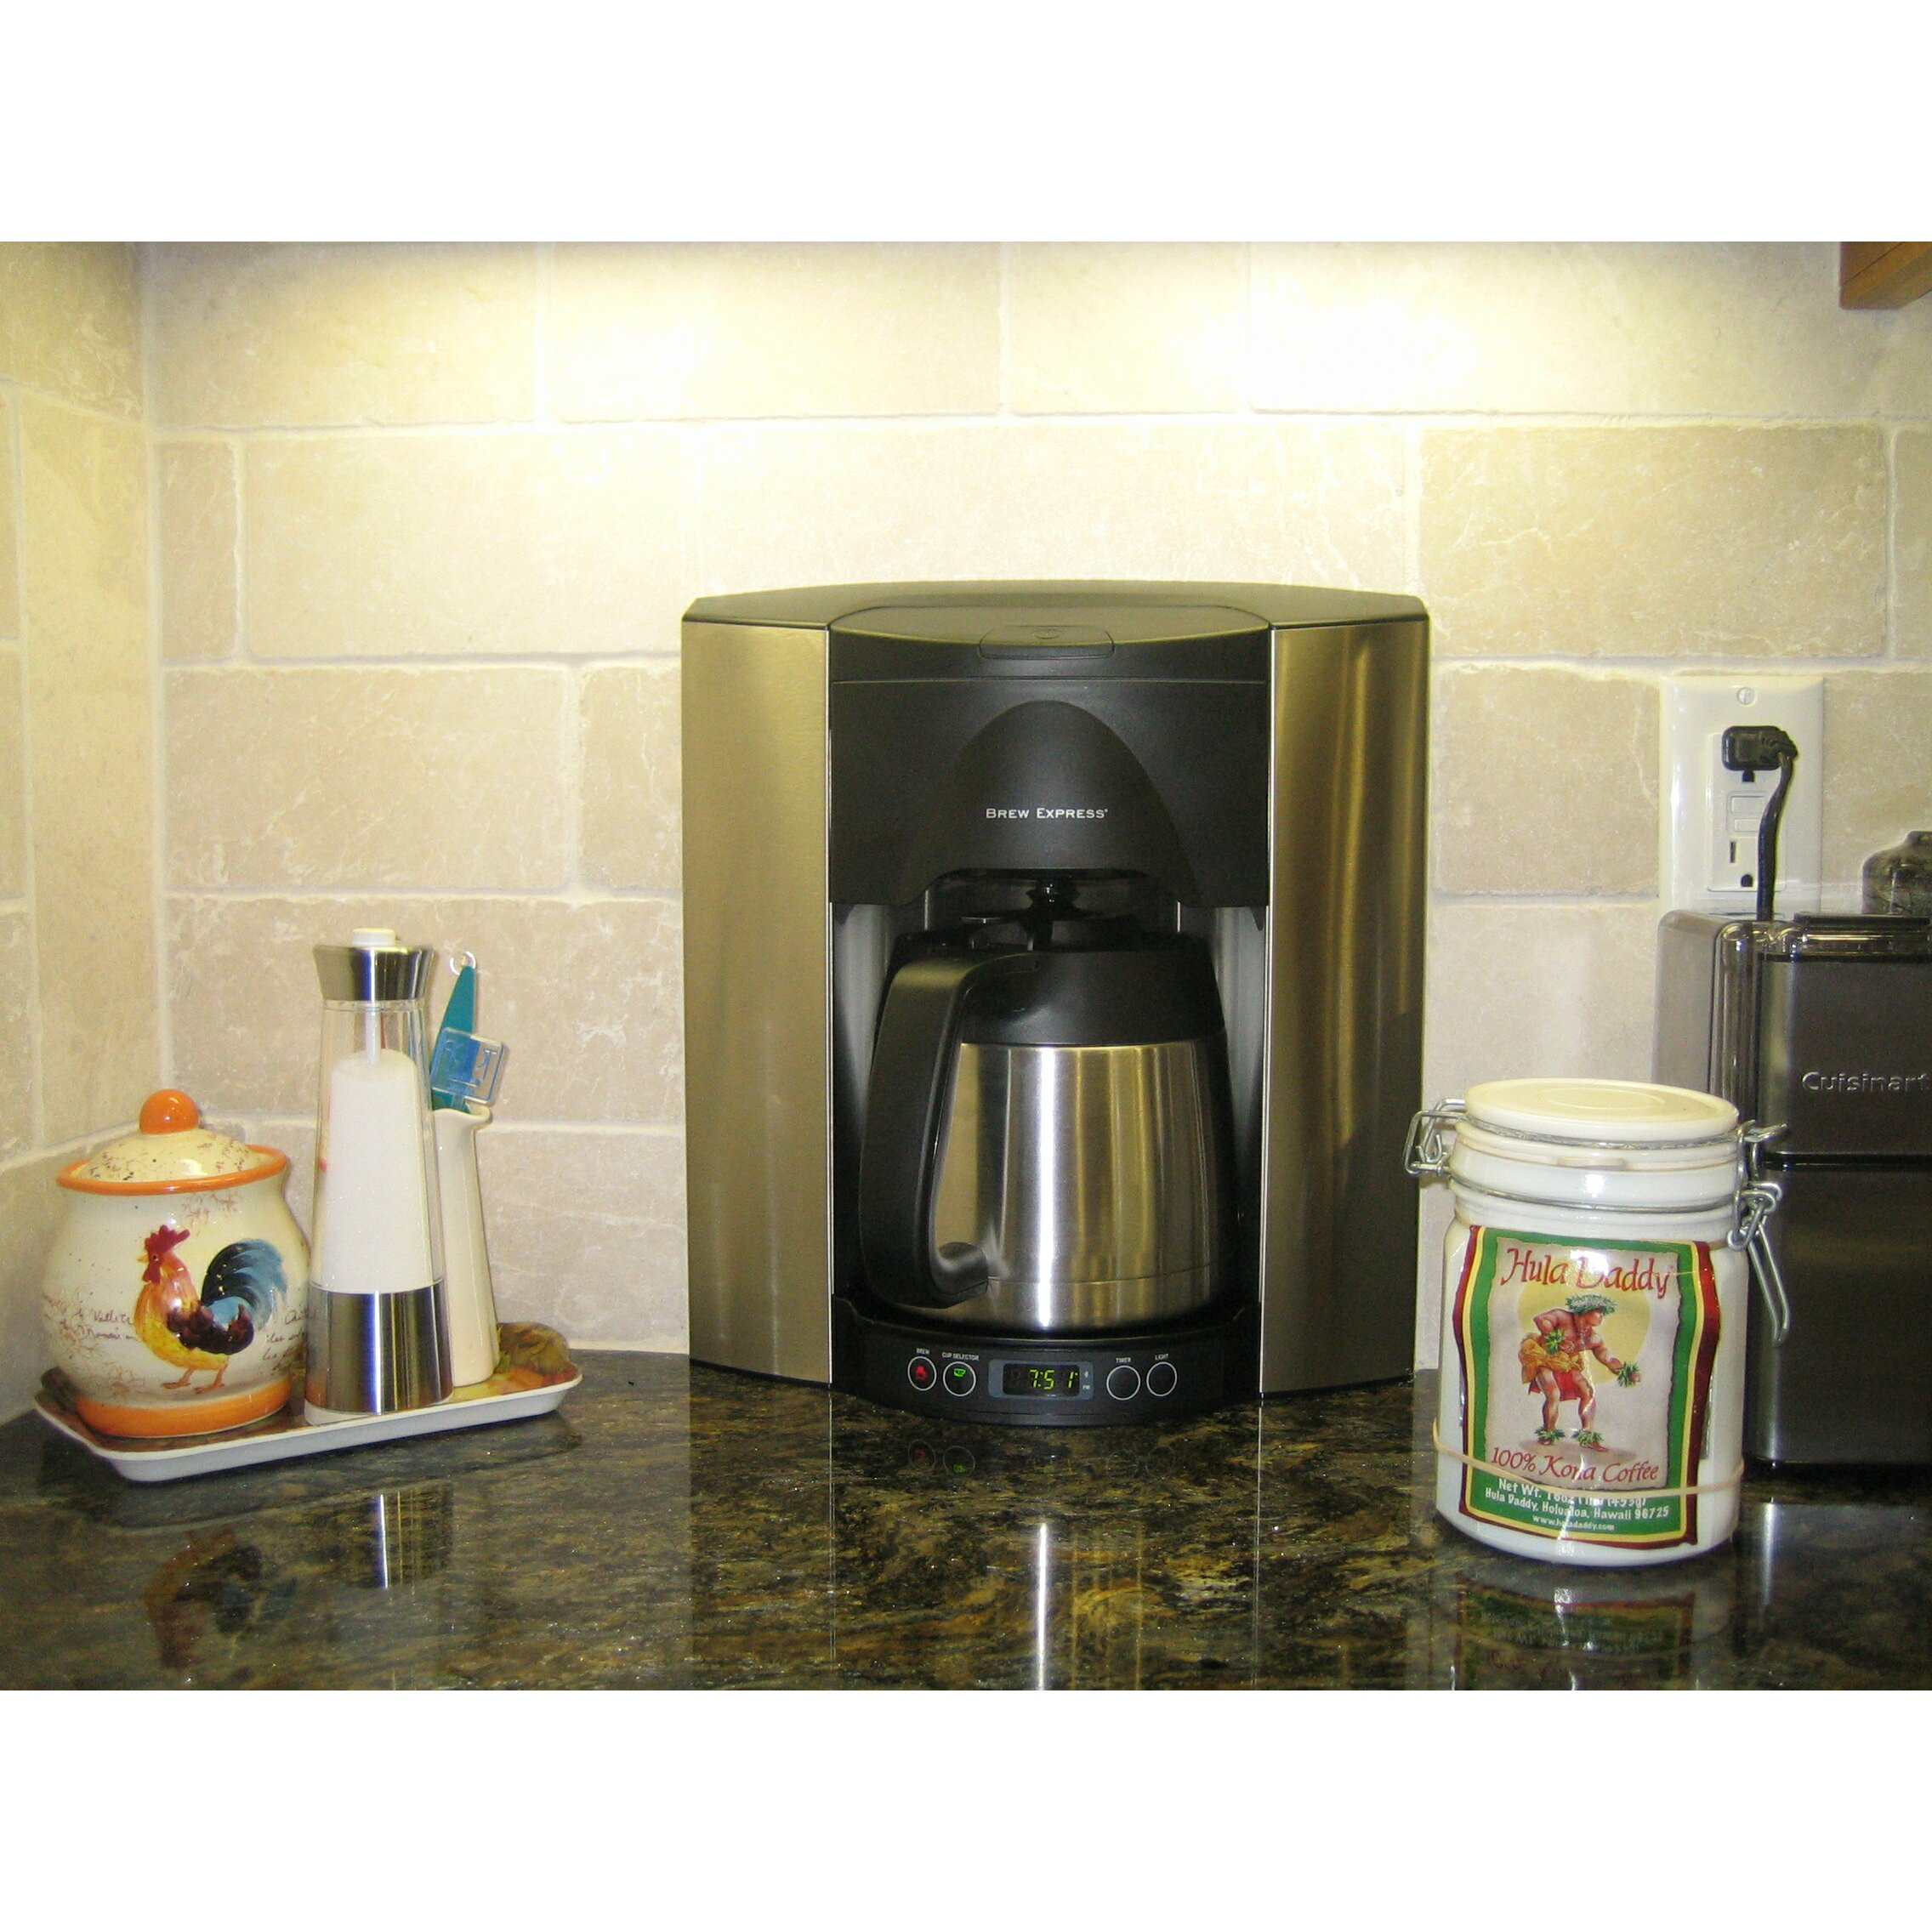 Stainless steel stovetop espresso maker 10 cup - Brew Express 10 Cup Built In The Wall Self Filling Coffee And